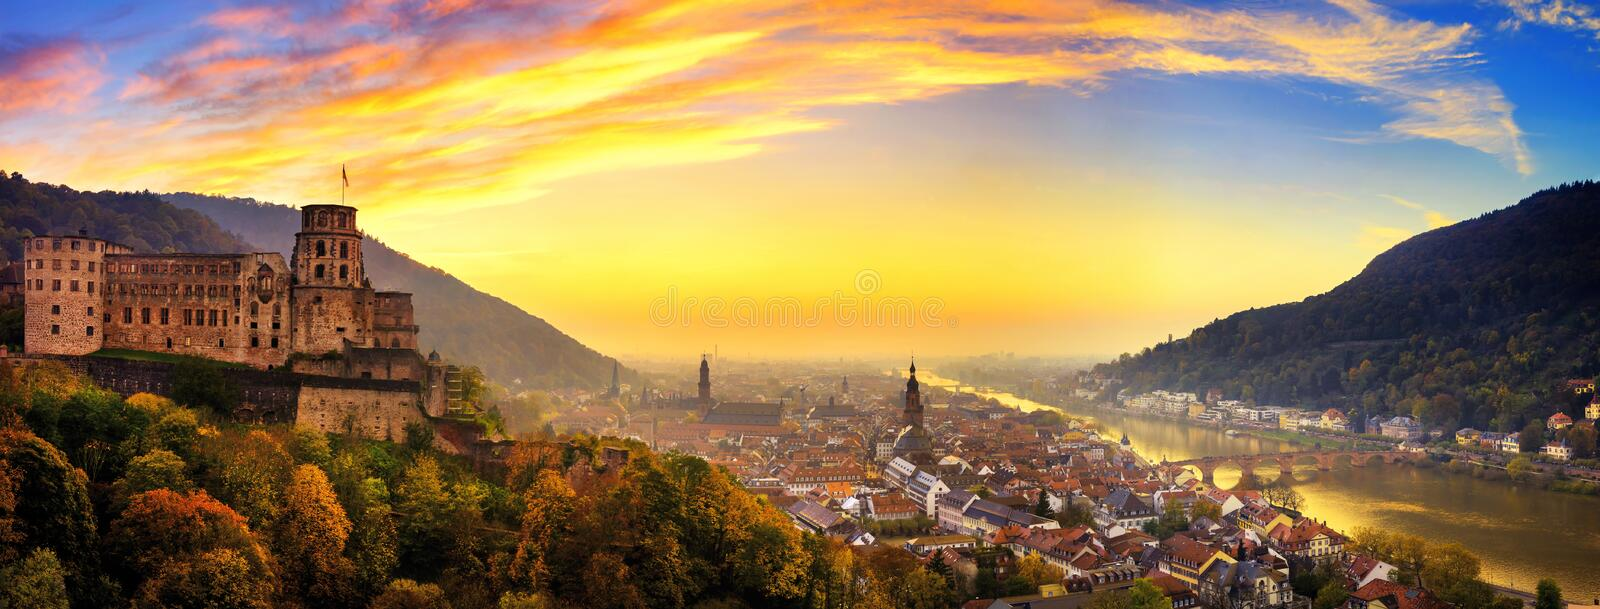 Heidelberg, Germany, with colorful dusk sky royalty free stock photography